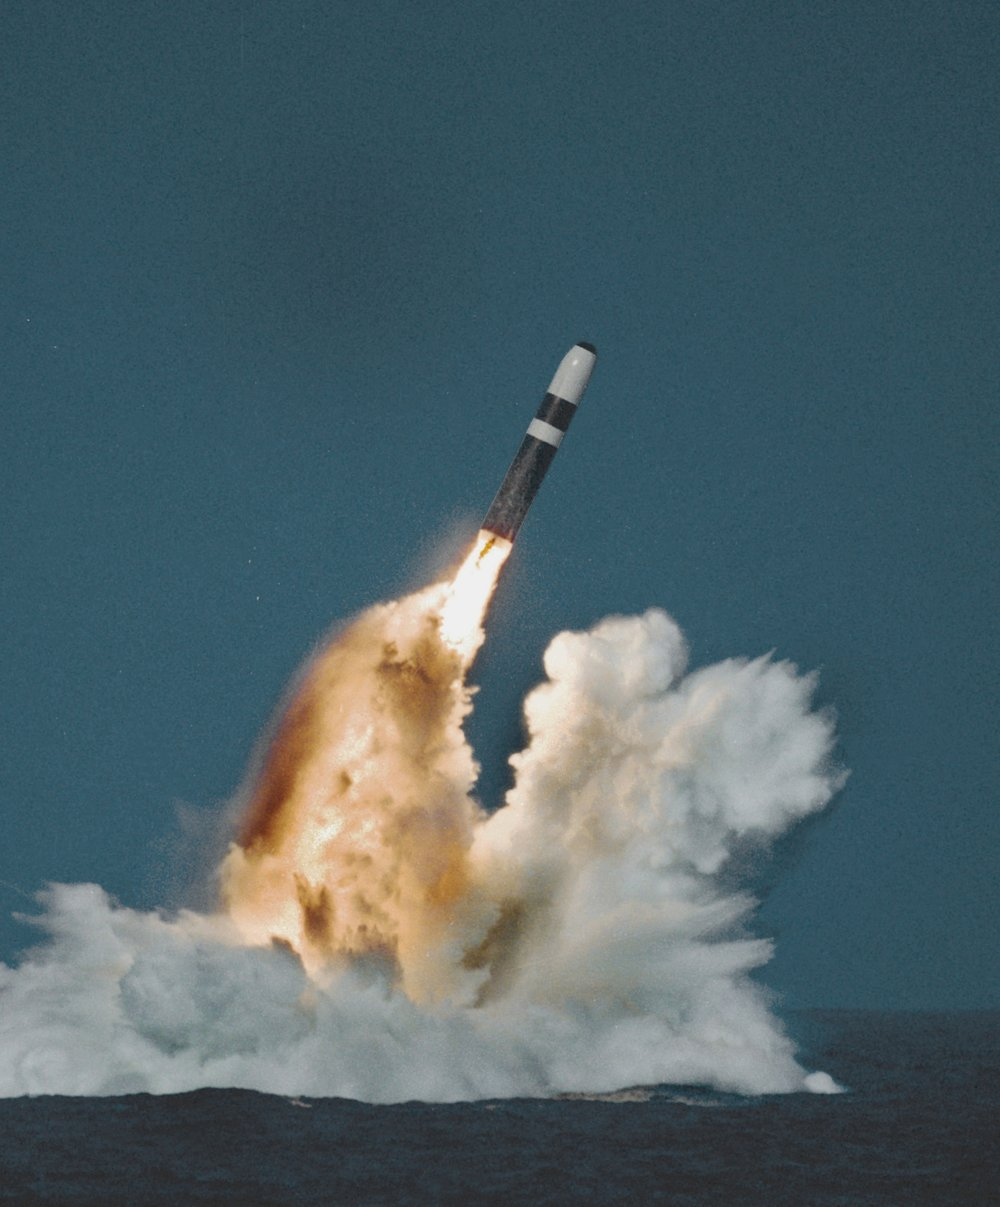 TELL OUR SENATORS: - WE MUST KEEP AND PROTECT OUR NUCLEAR ARMS TREATIES